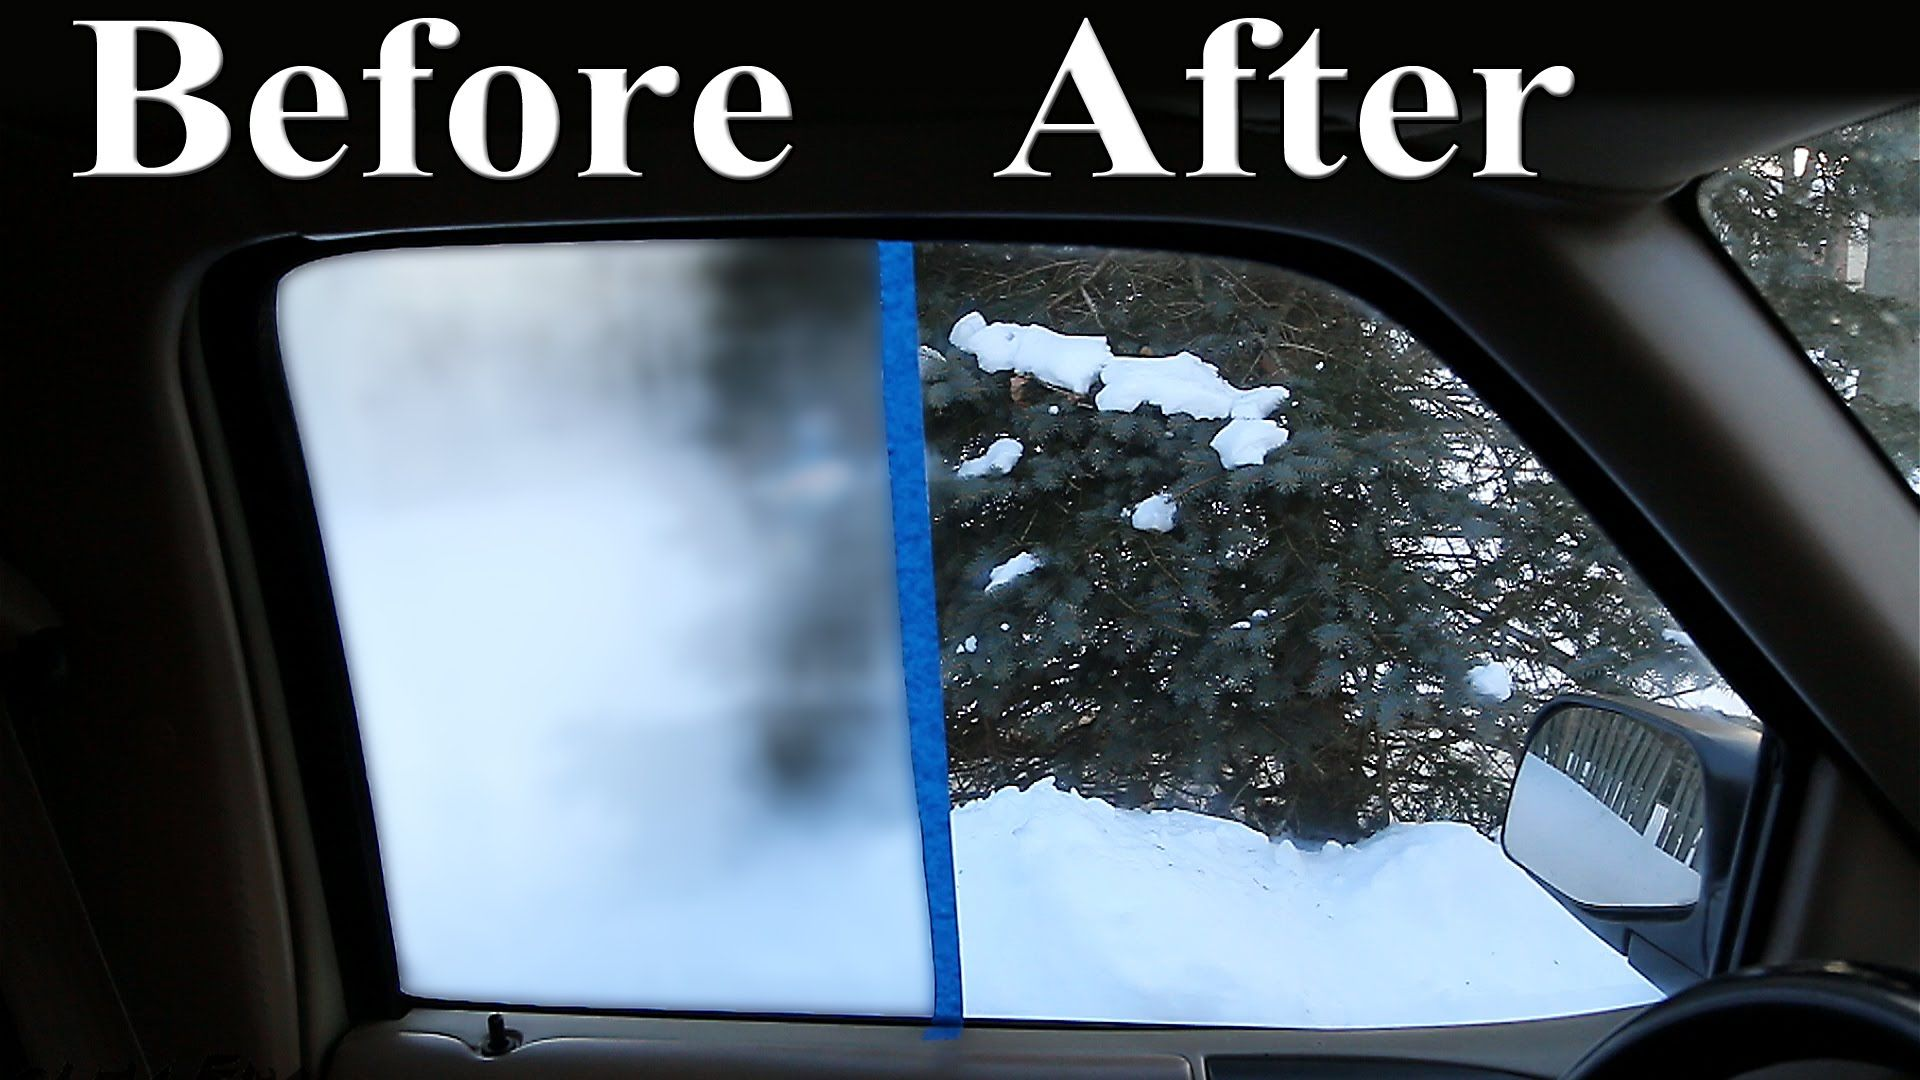 Use Shaving Cream To Prevent Your Car Windows From Fogging Up